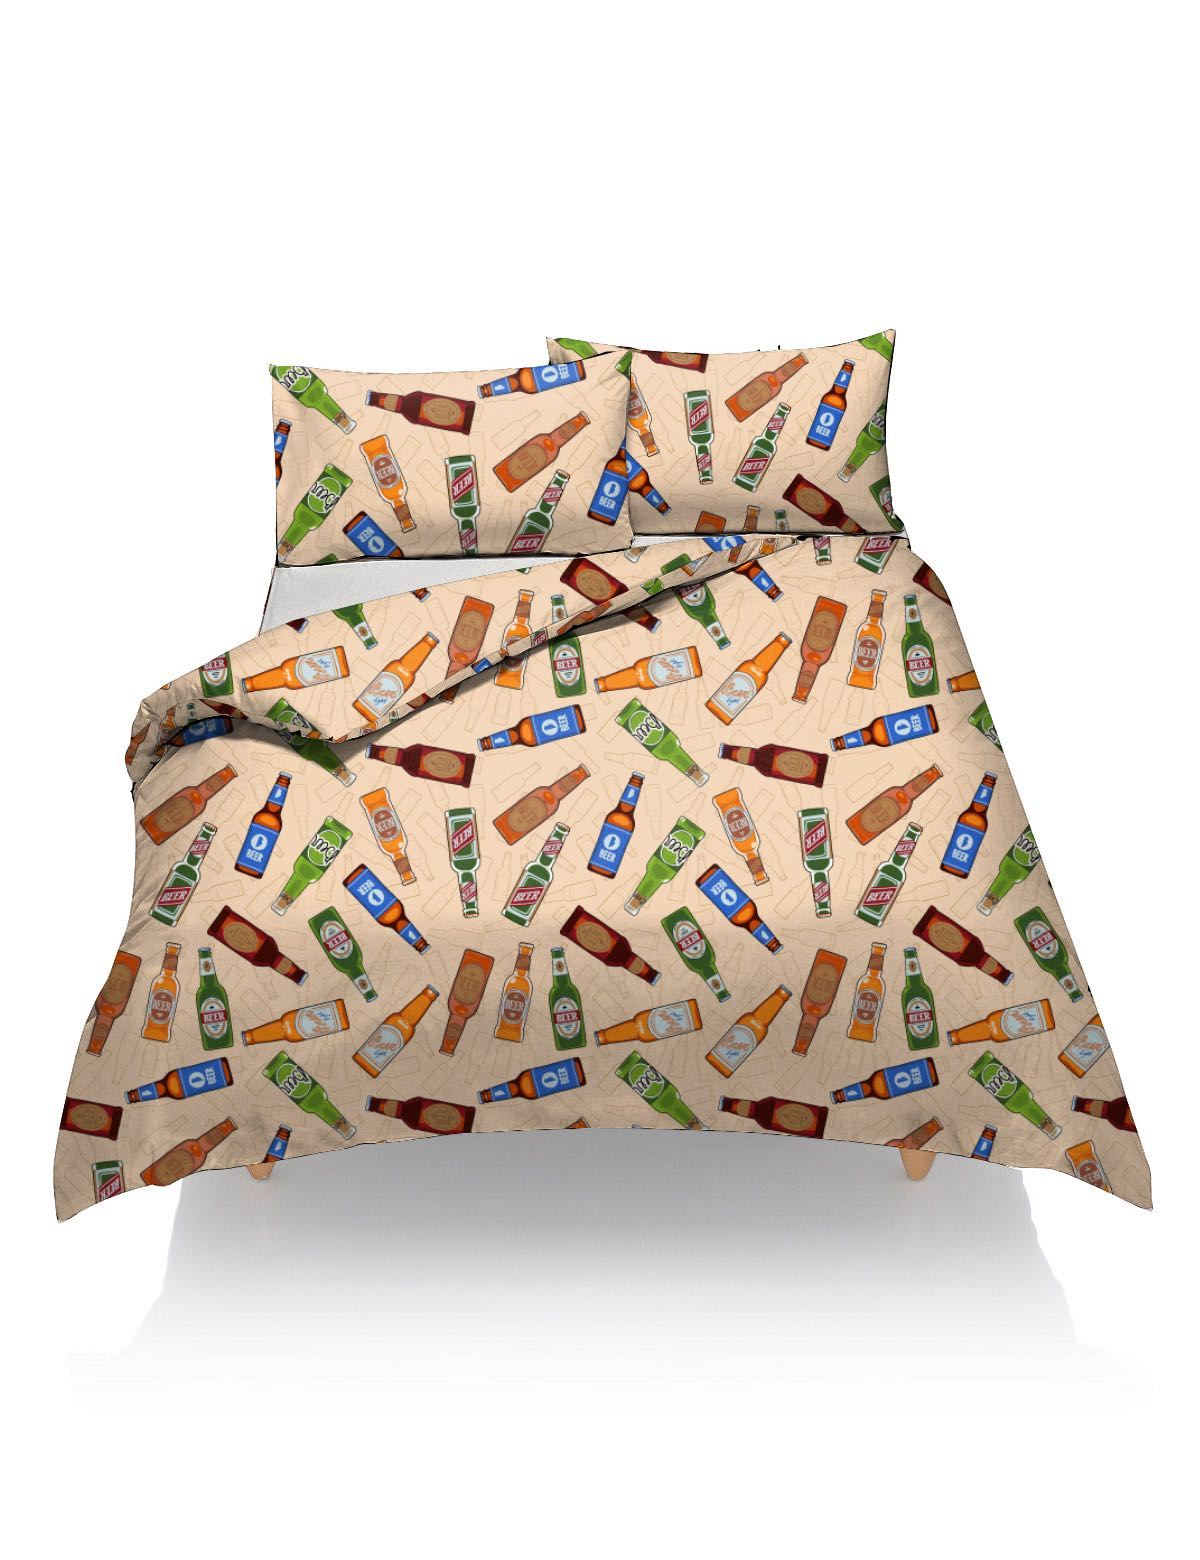 Fancy Duvet Cover With Pillow Case Printed Quilt Bedding